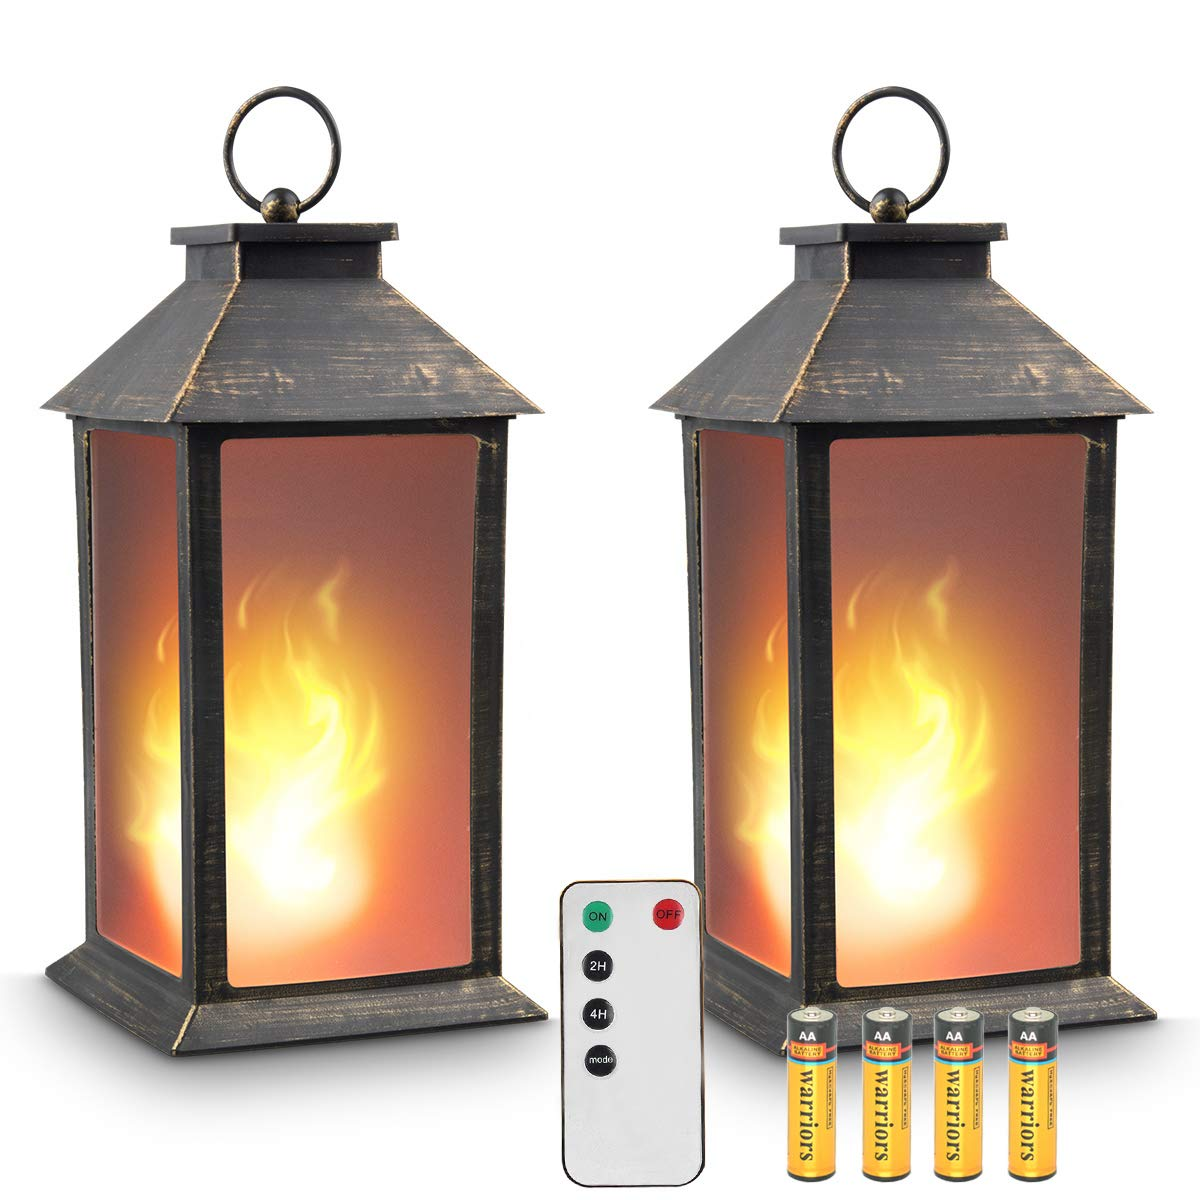 zkee 13'' Vintage Style Lantern,Flickering Flame Effect Tabletop Lantern(Black,Remote Timer and Batteries Included) Indoor/Outdoor Hanging Lantern,Decorative Candle Lantern (Set of 2)